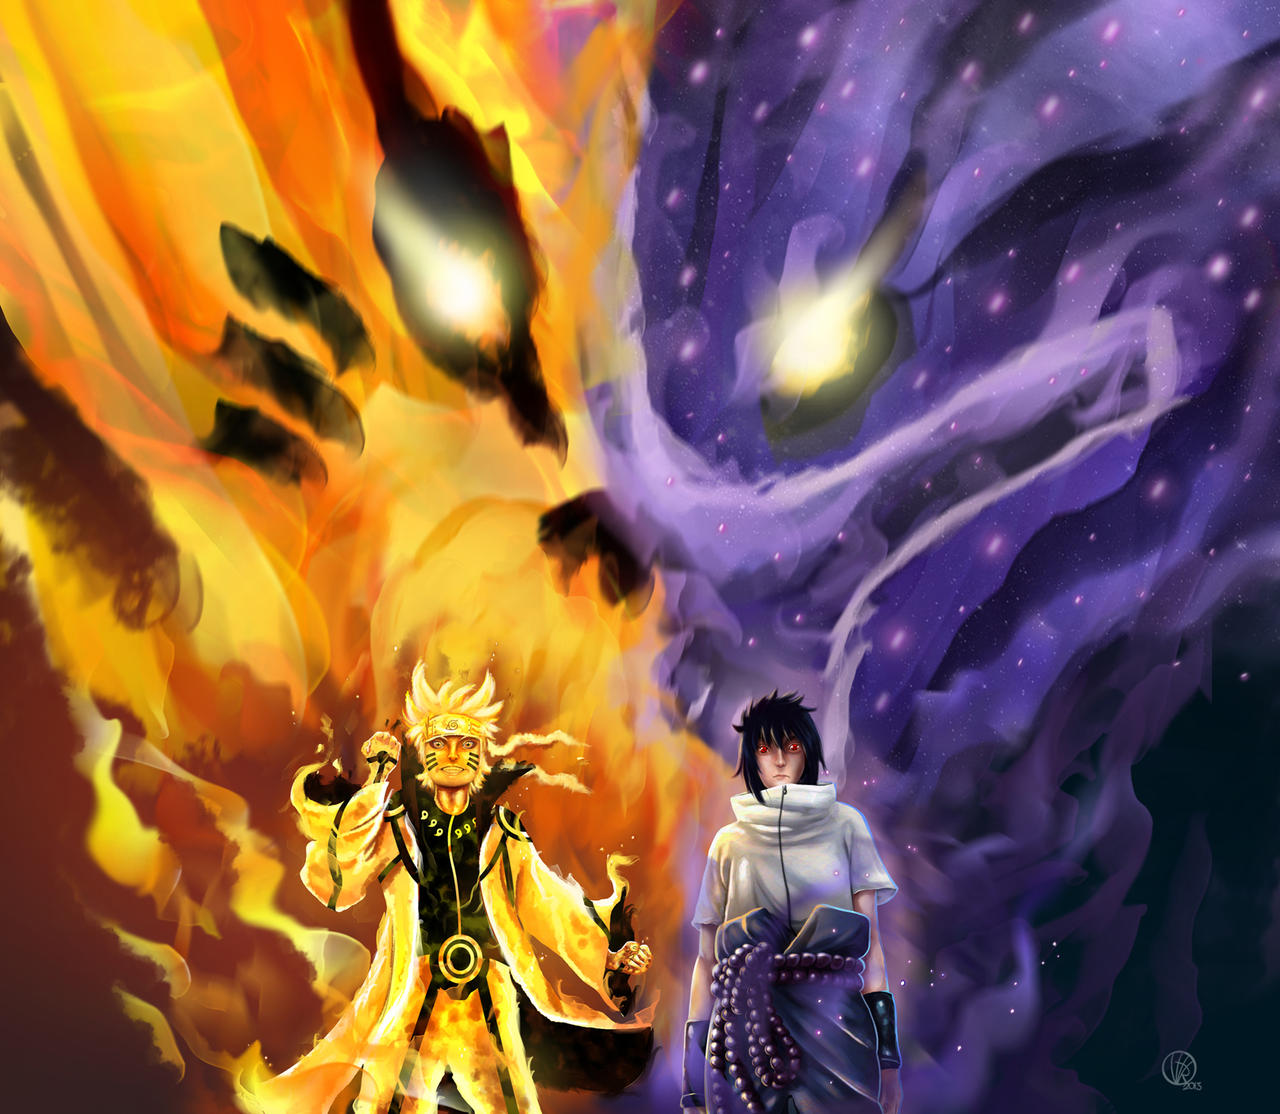 Naruto Fan Art By Victorfl On DeviantArt